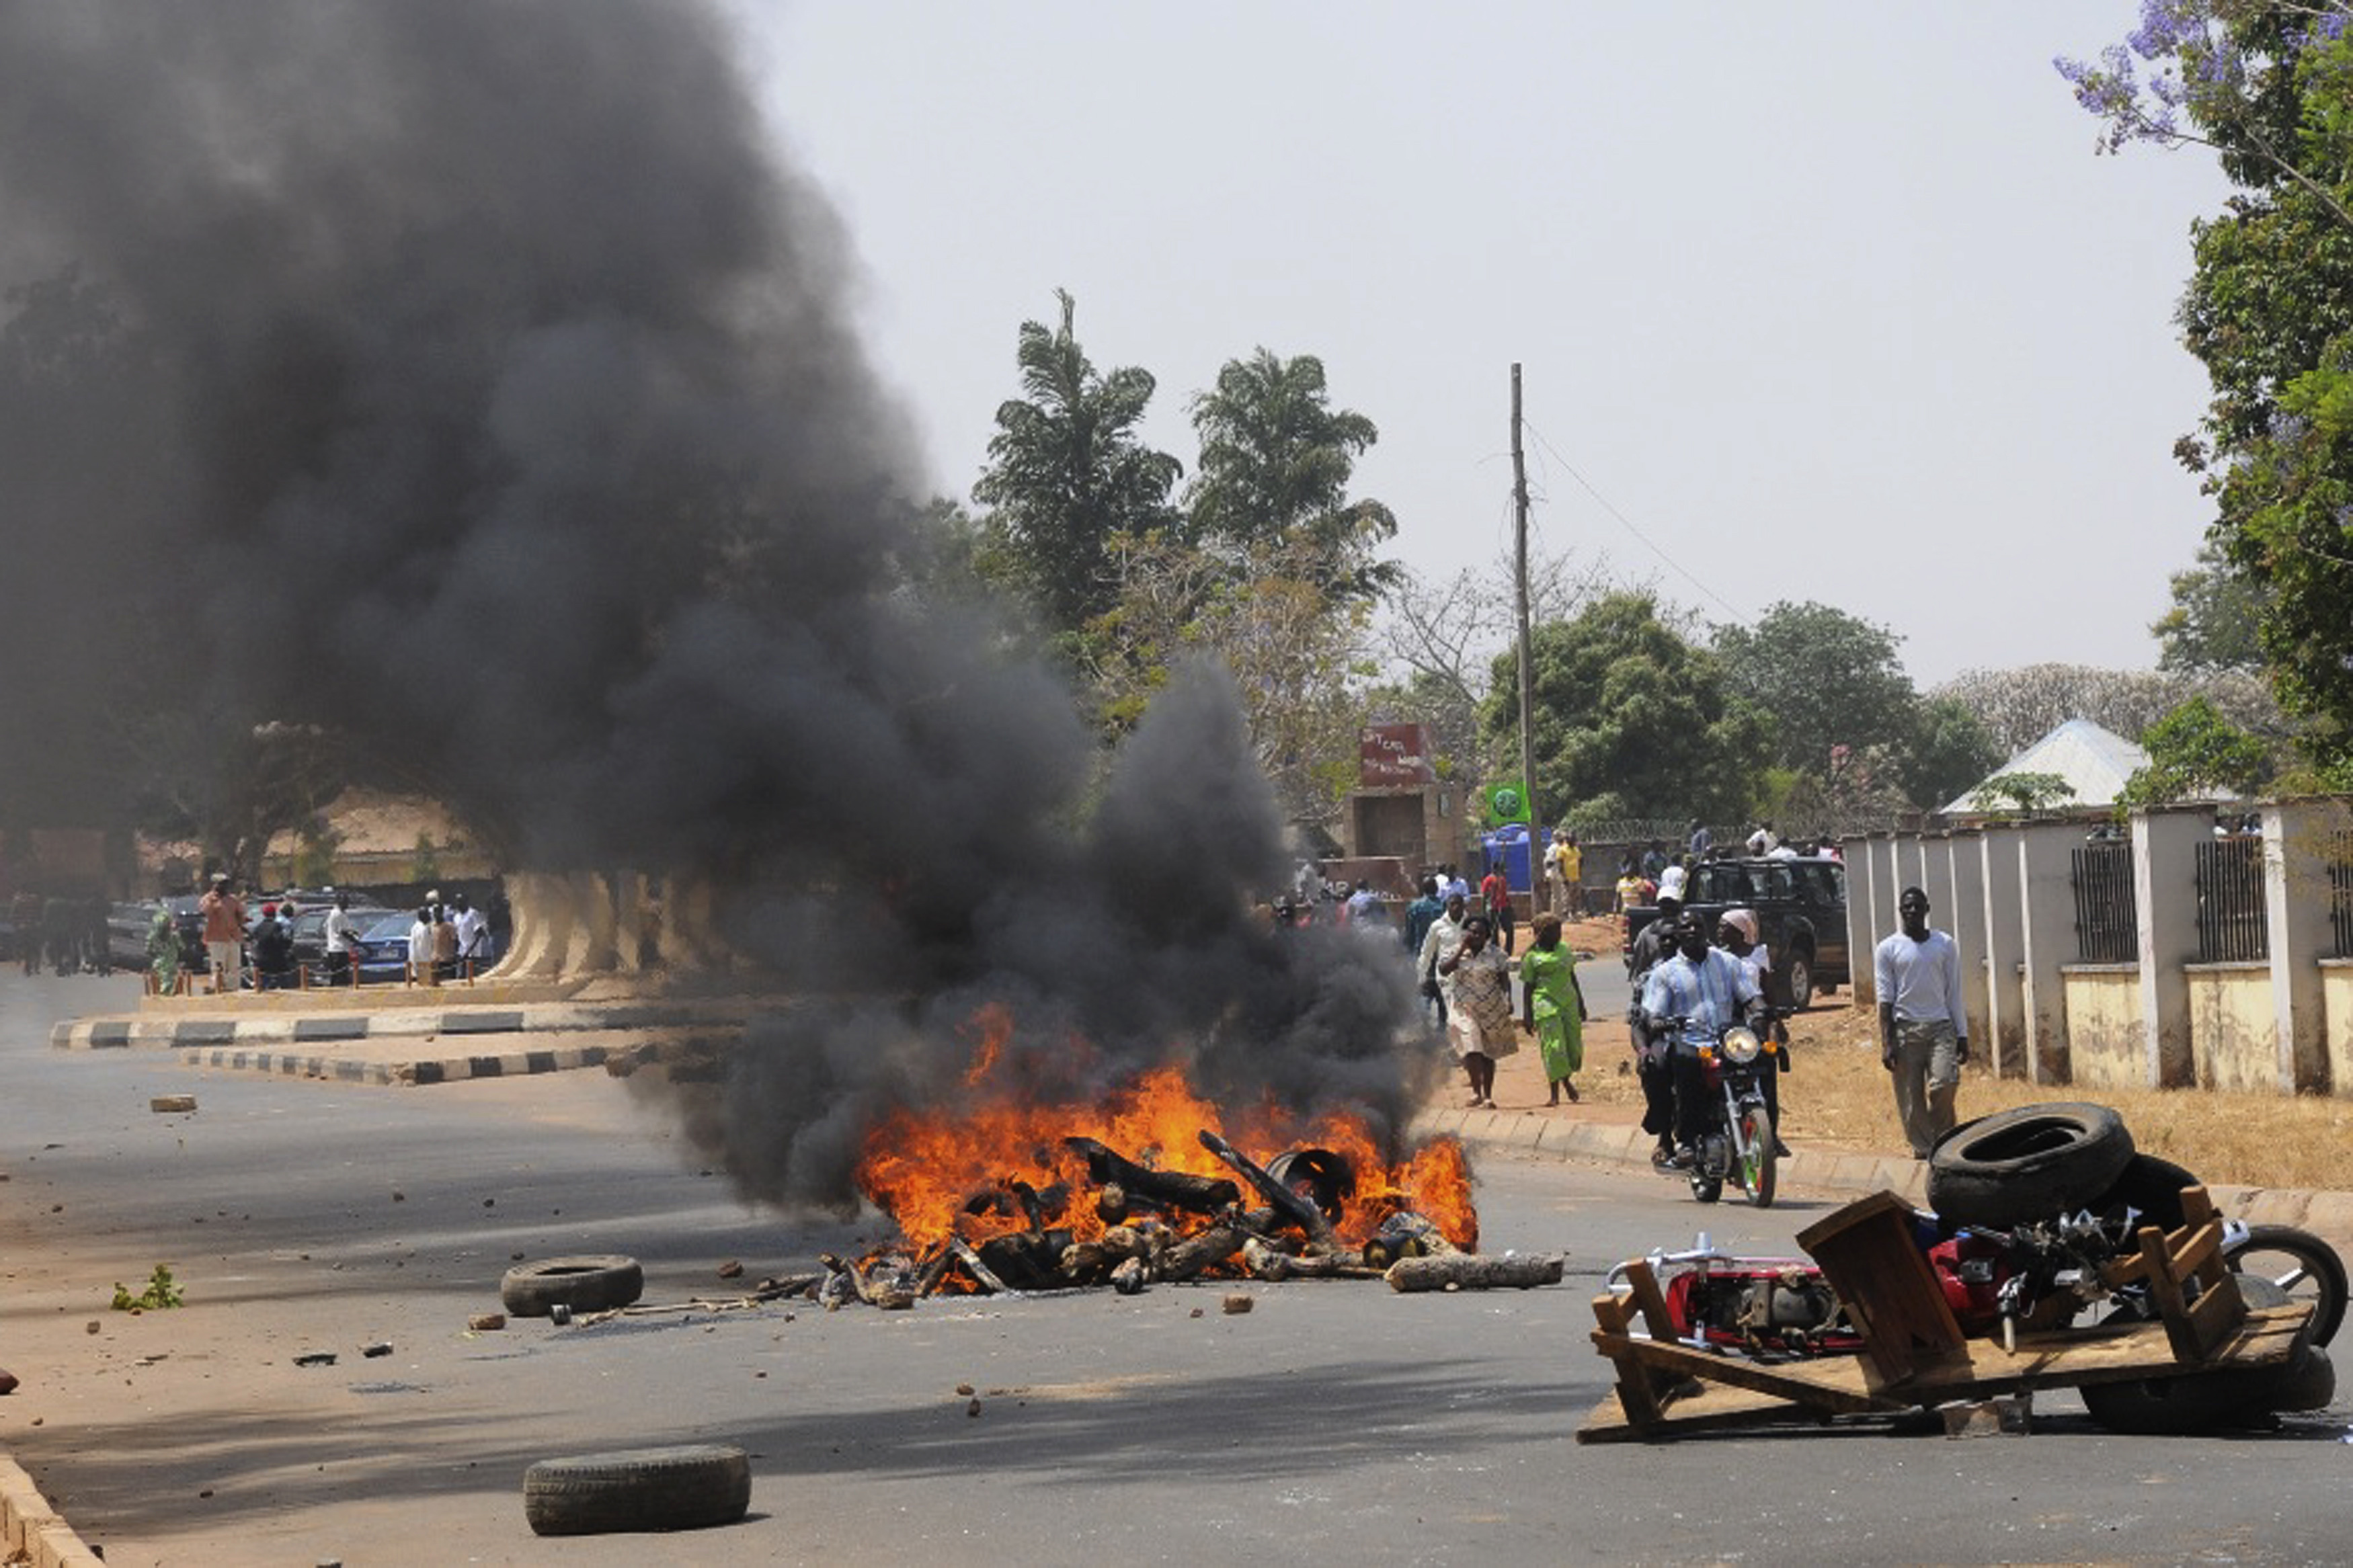 conflict of north central nigeria on The failure of nigerian authorities to investigate the attacks or bring  to  exacerbate the cycle of violence in the conflict-prone north central.